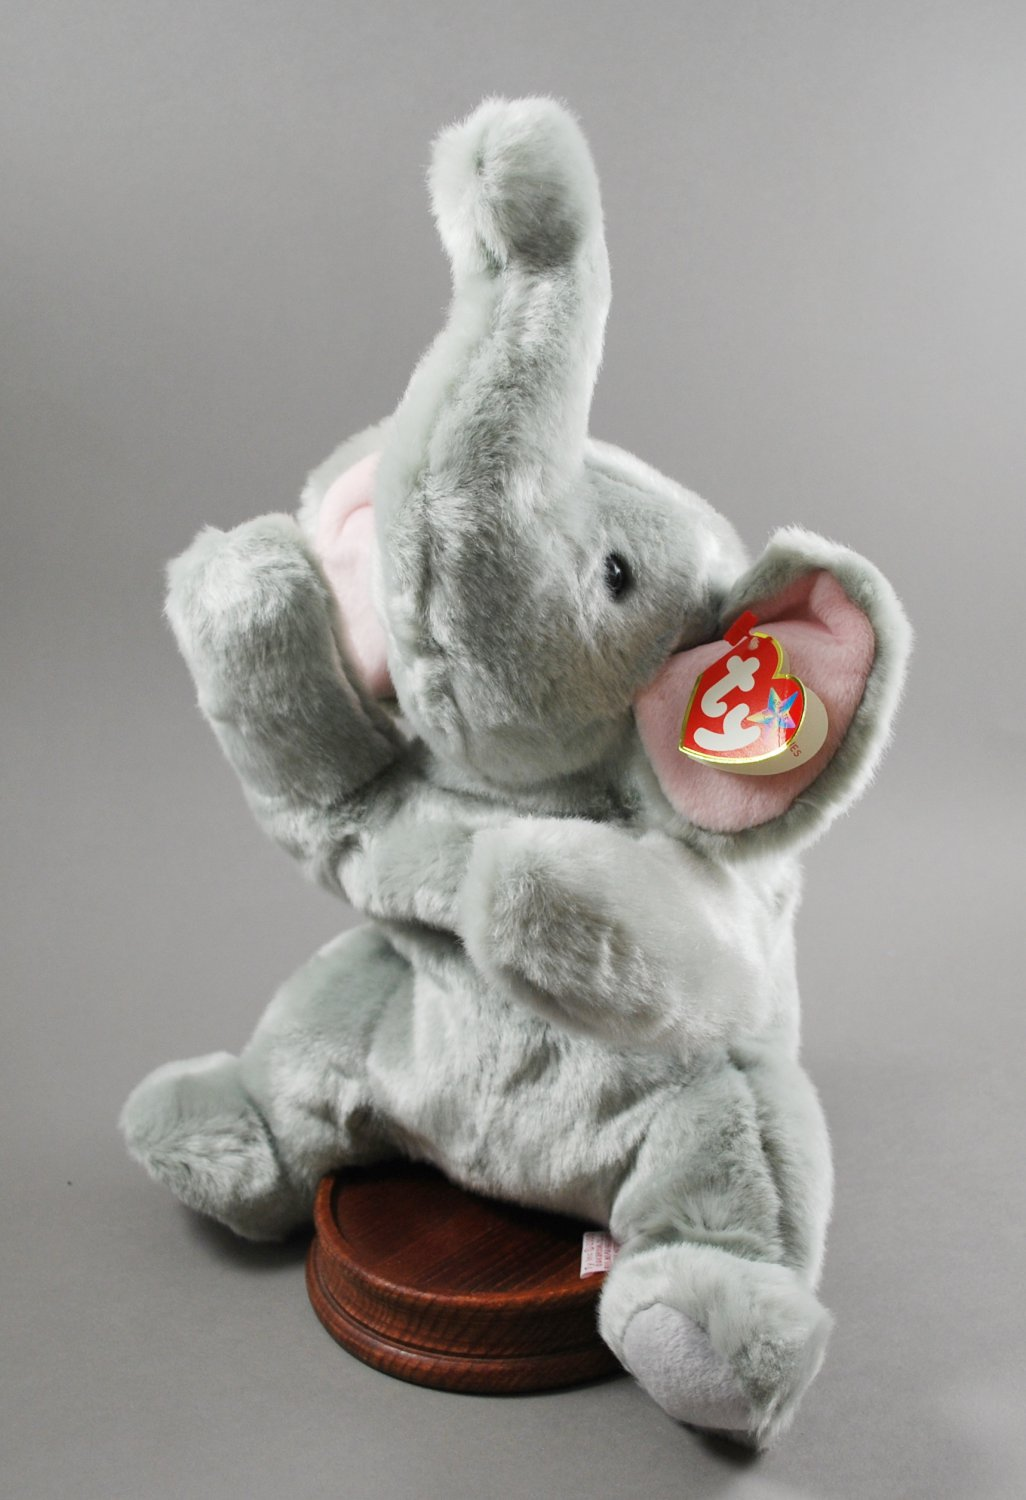 Ty Righty the Elephant Plush Beanie Buddy Style 9369